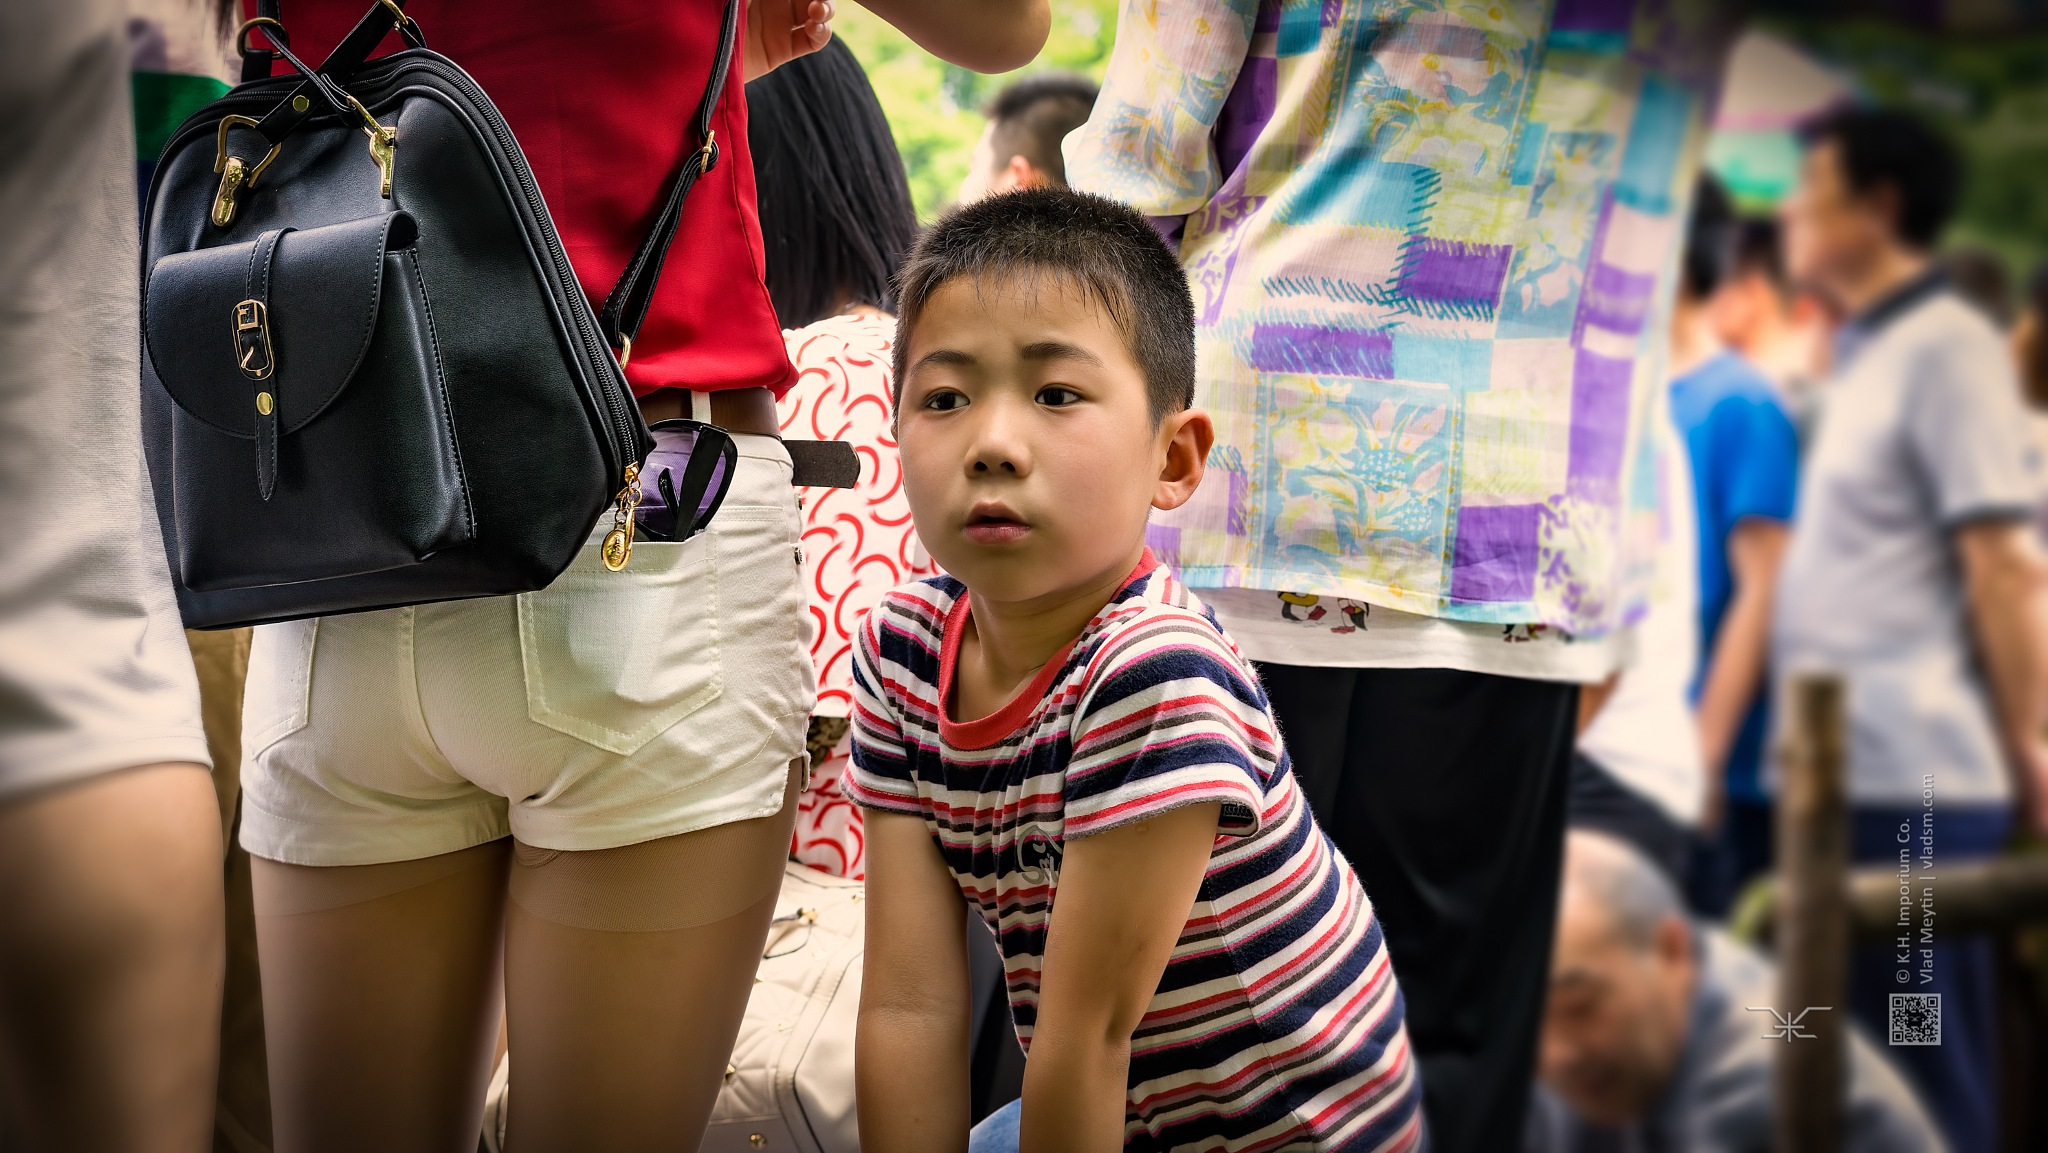 A day in the city park, street photo, candid (Nantong, China), 06-2015, 6 by Vlad Meytin